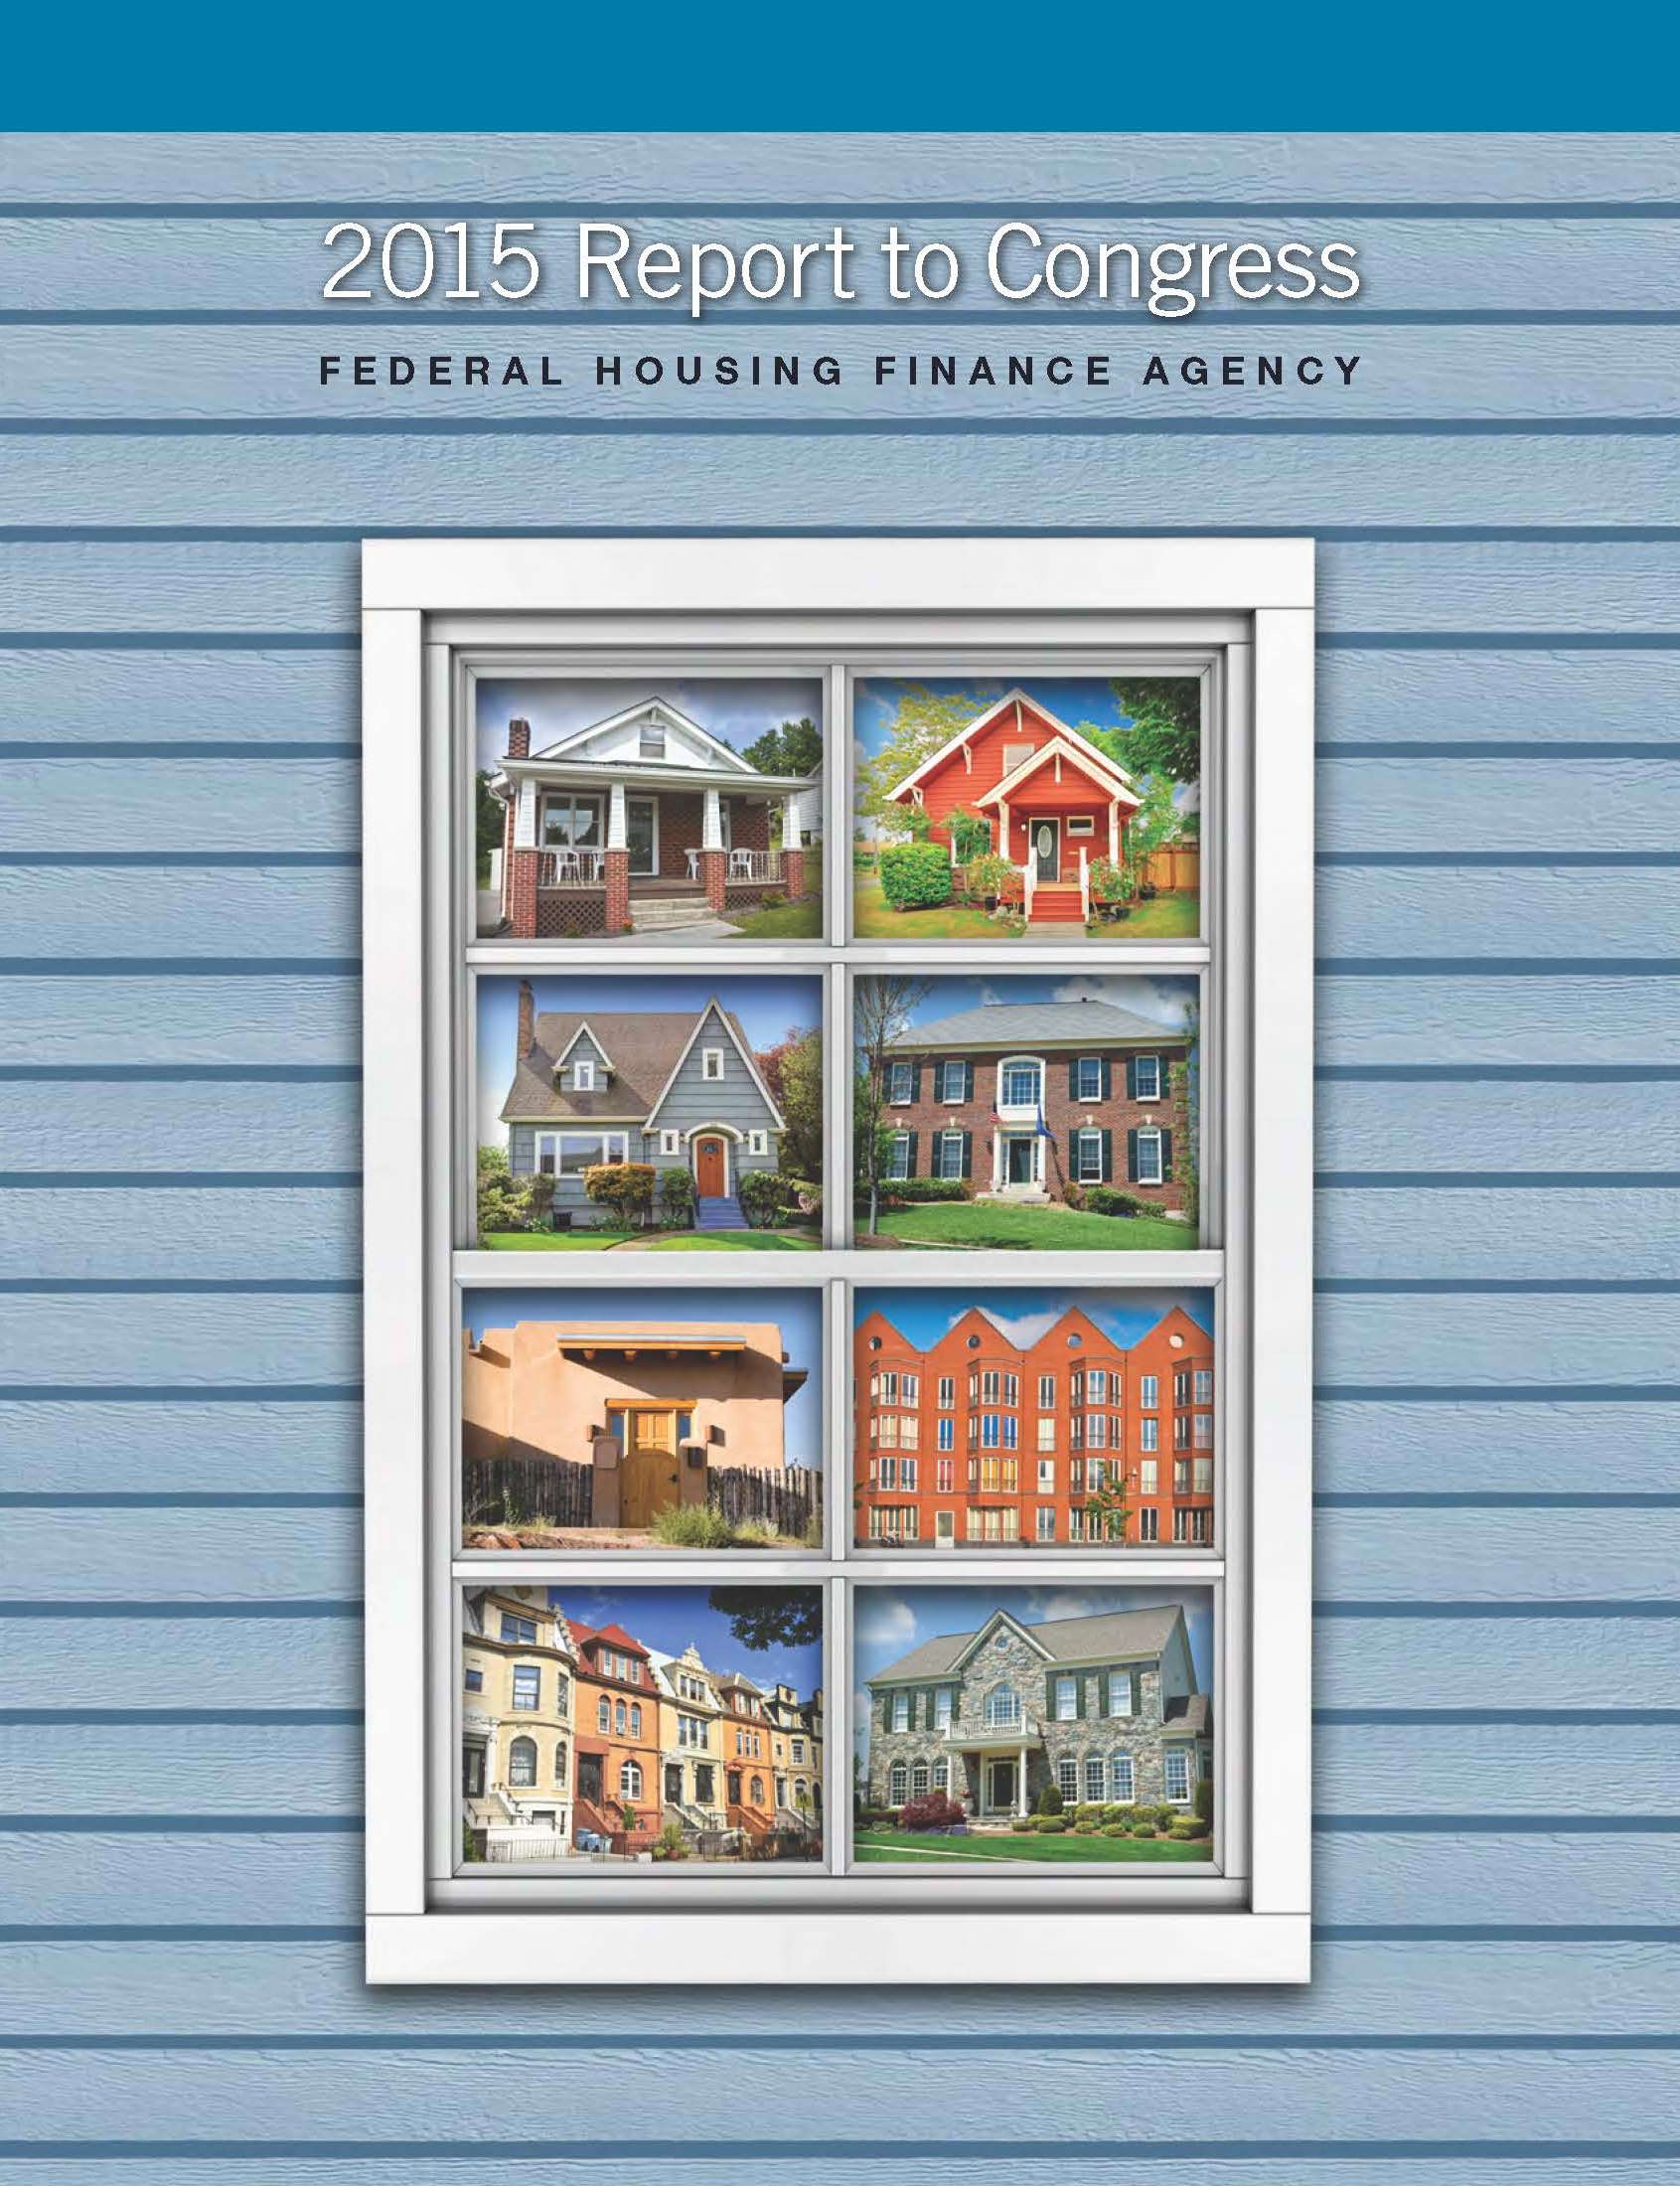 FHFA 2014 REPORT TO CONGRESS